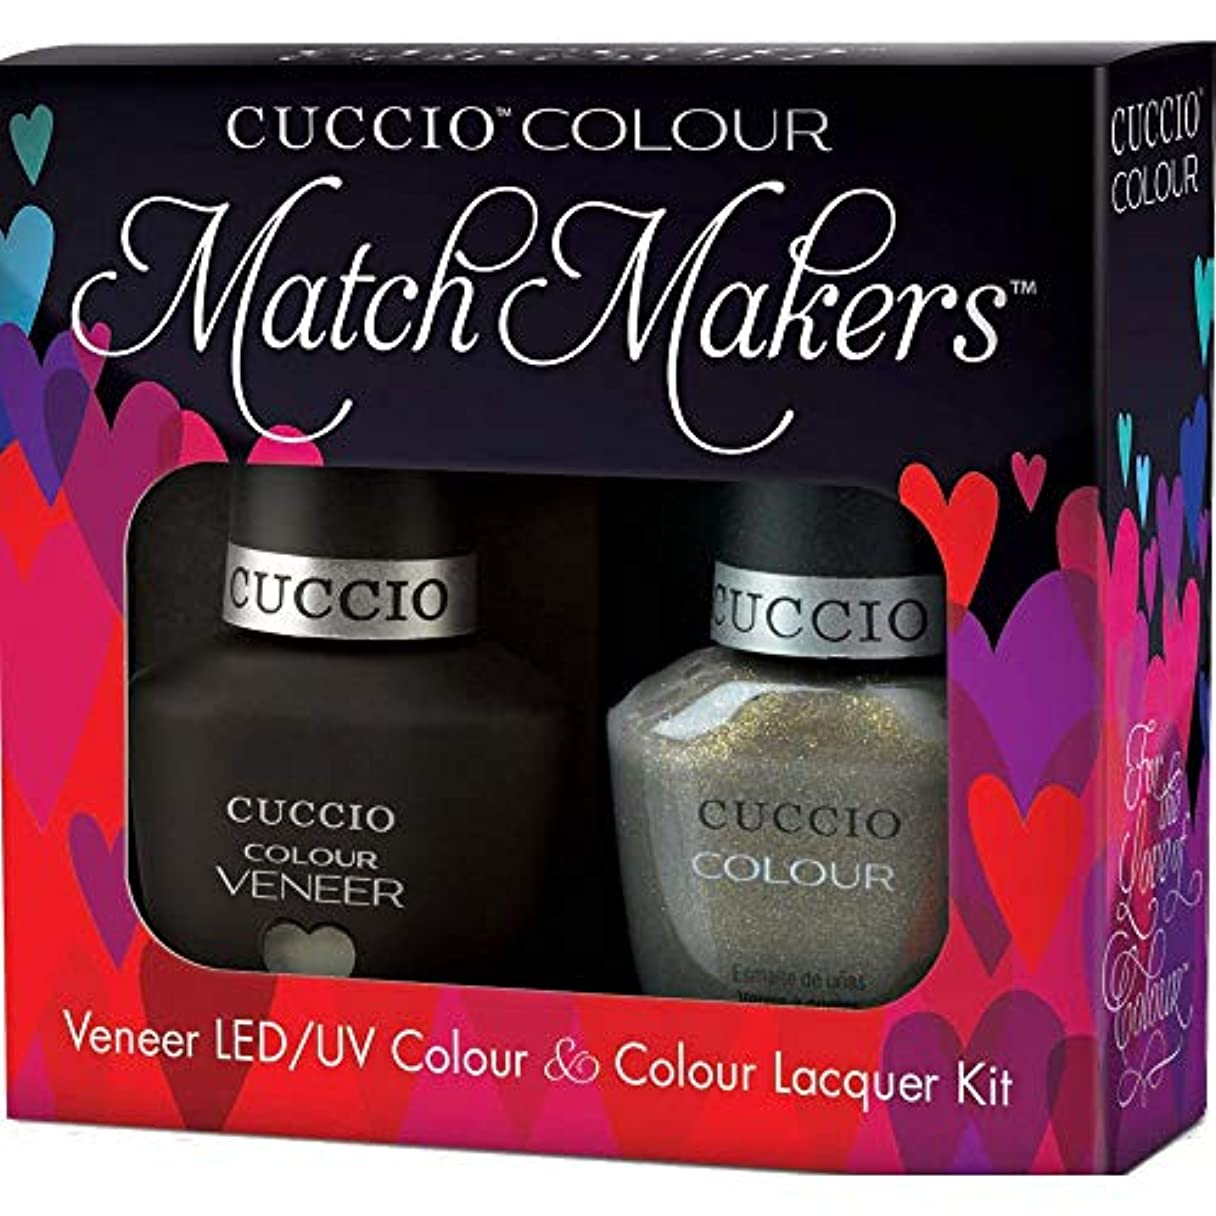 Cuccio MatchMakers Veneer & Lacquer - Olive You - 0.43oz / 13ml Each